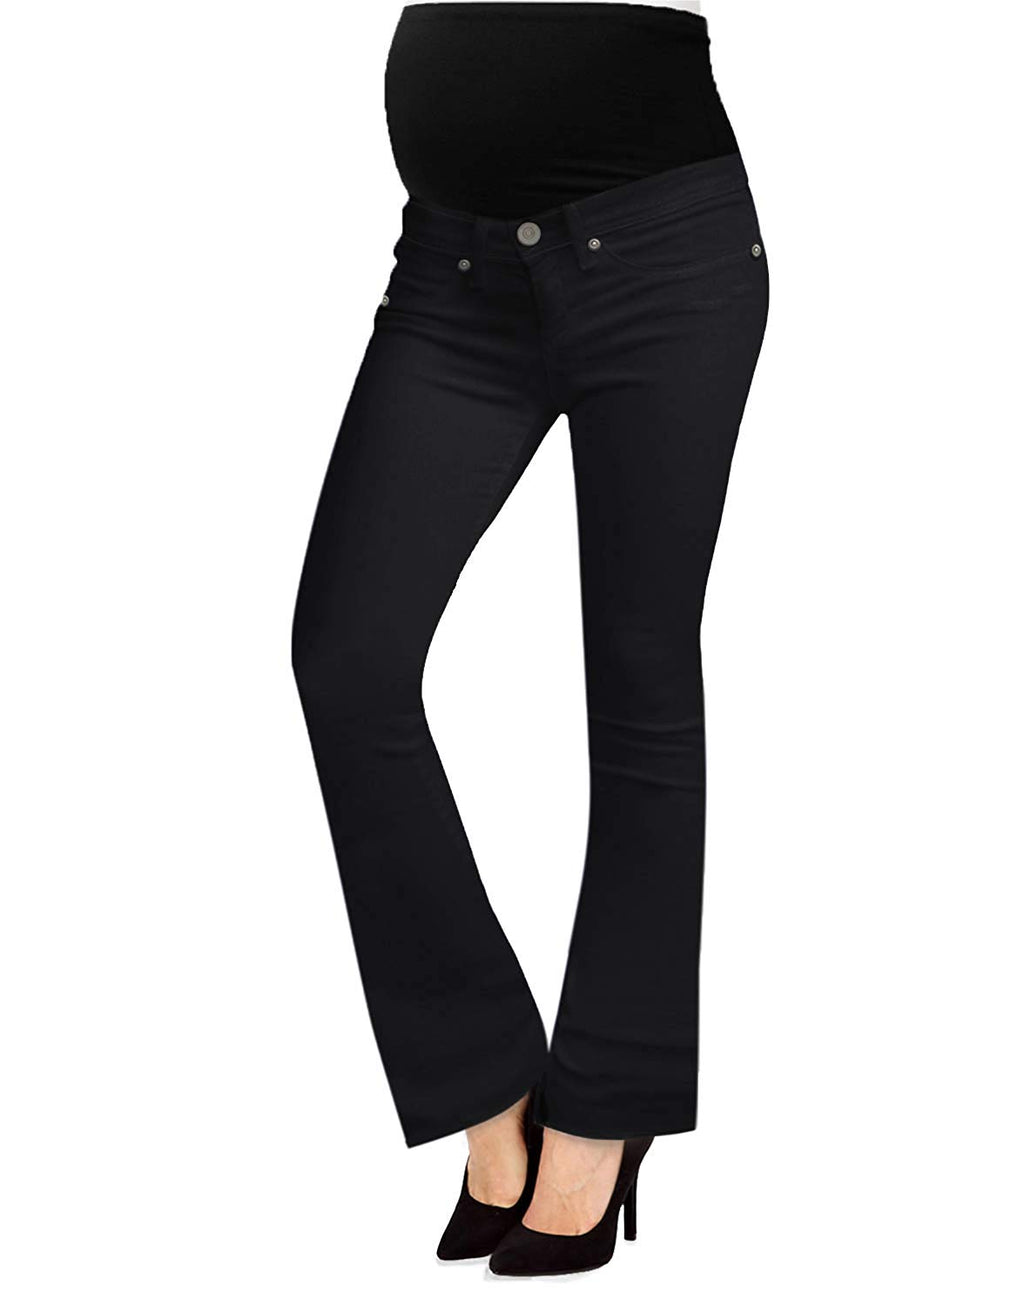 black bootcut maternity jeans